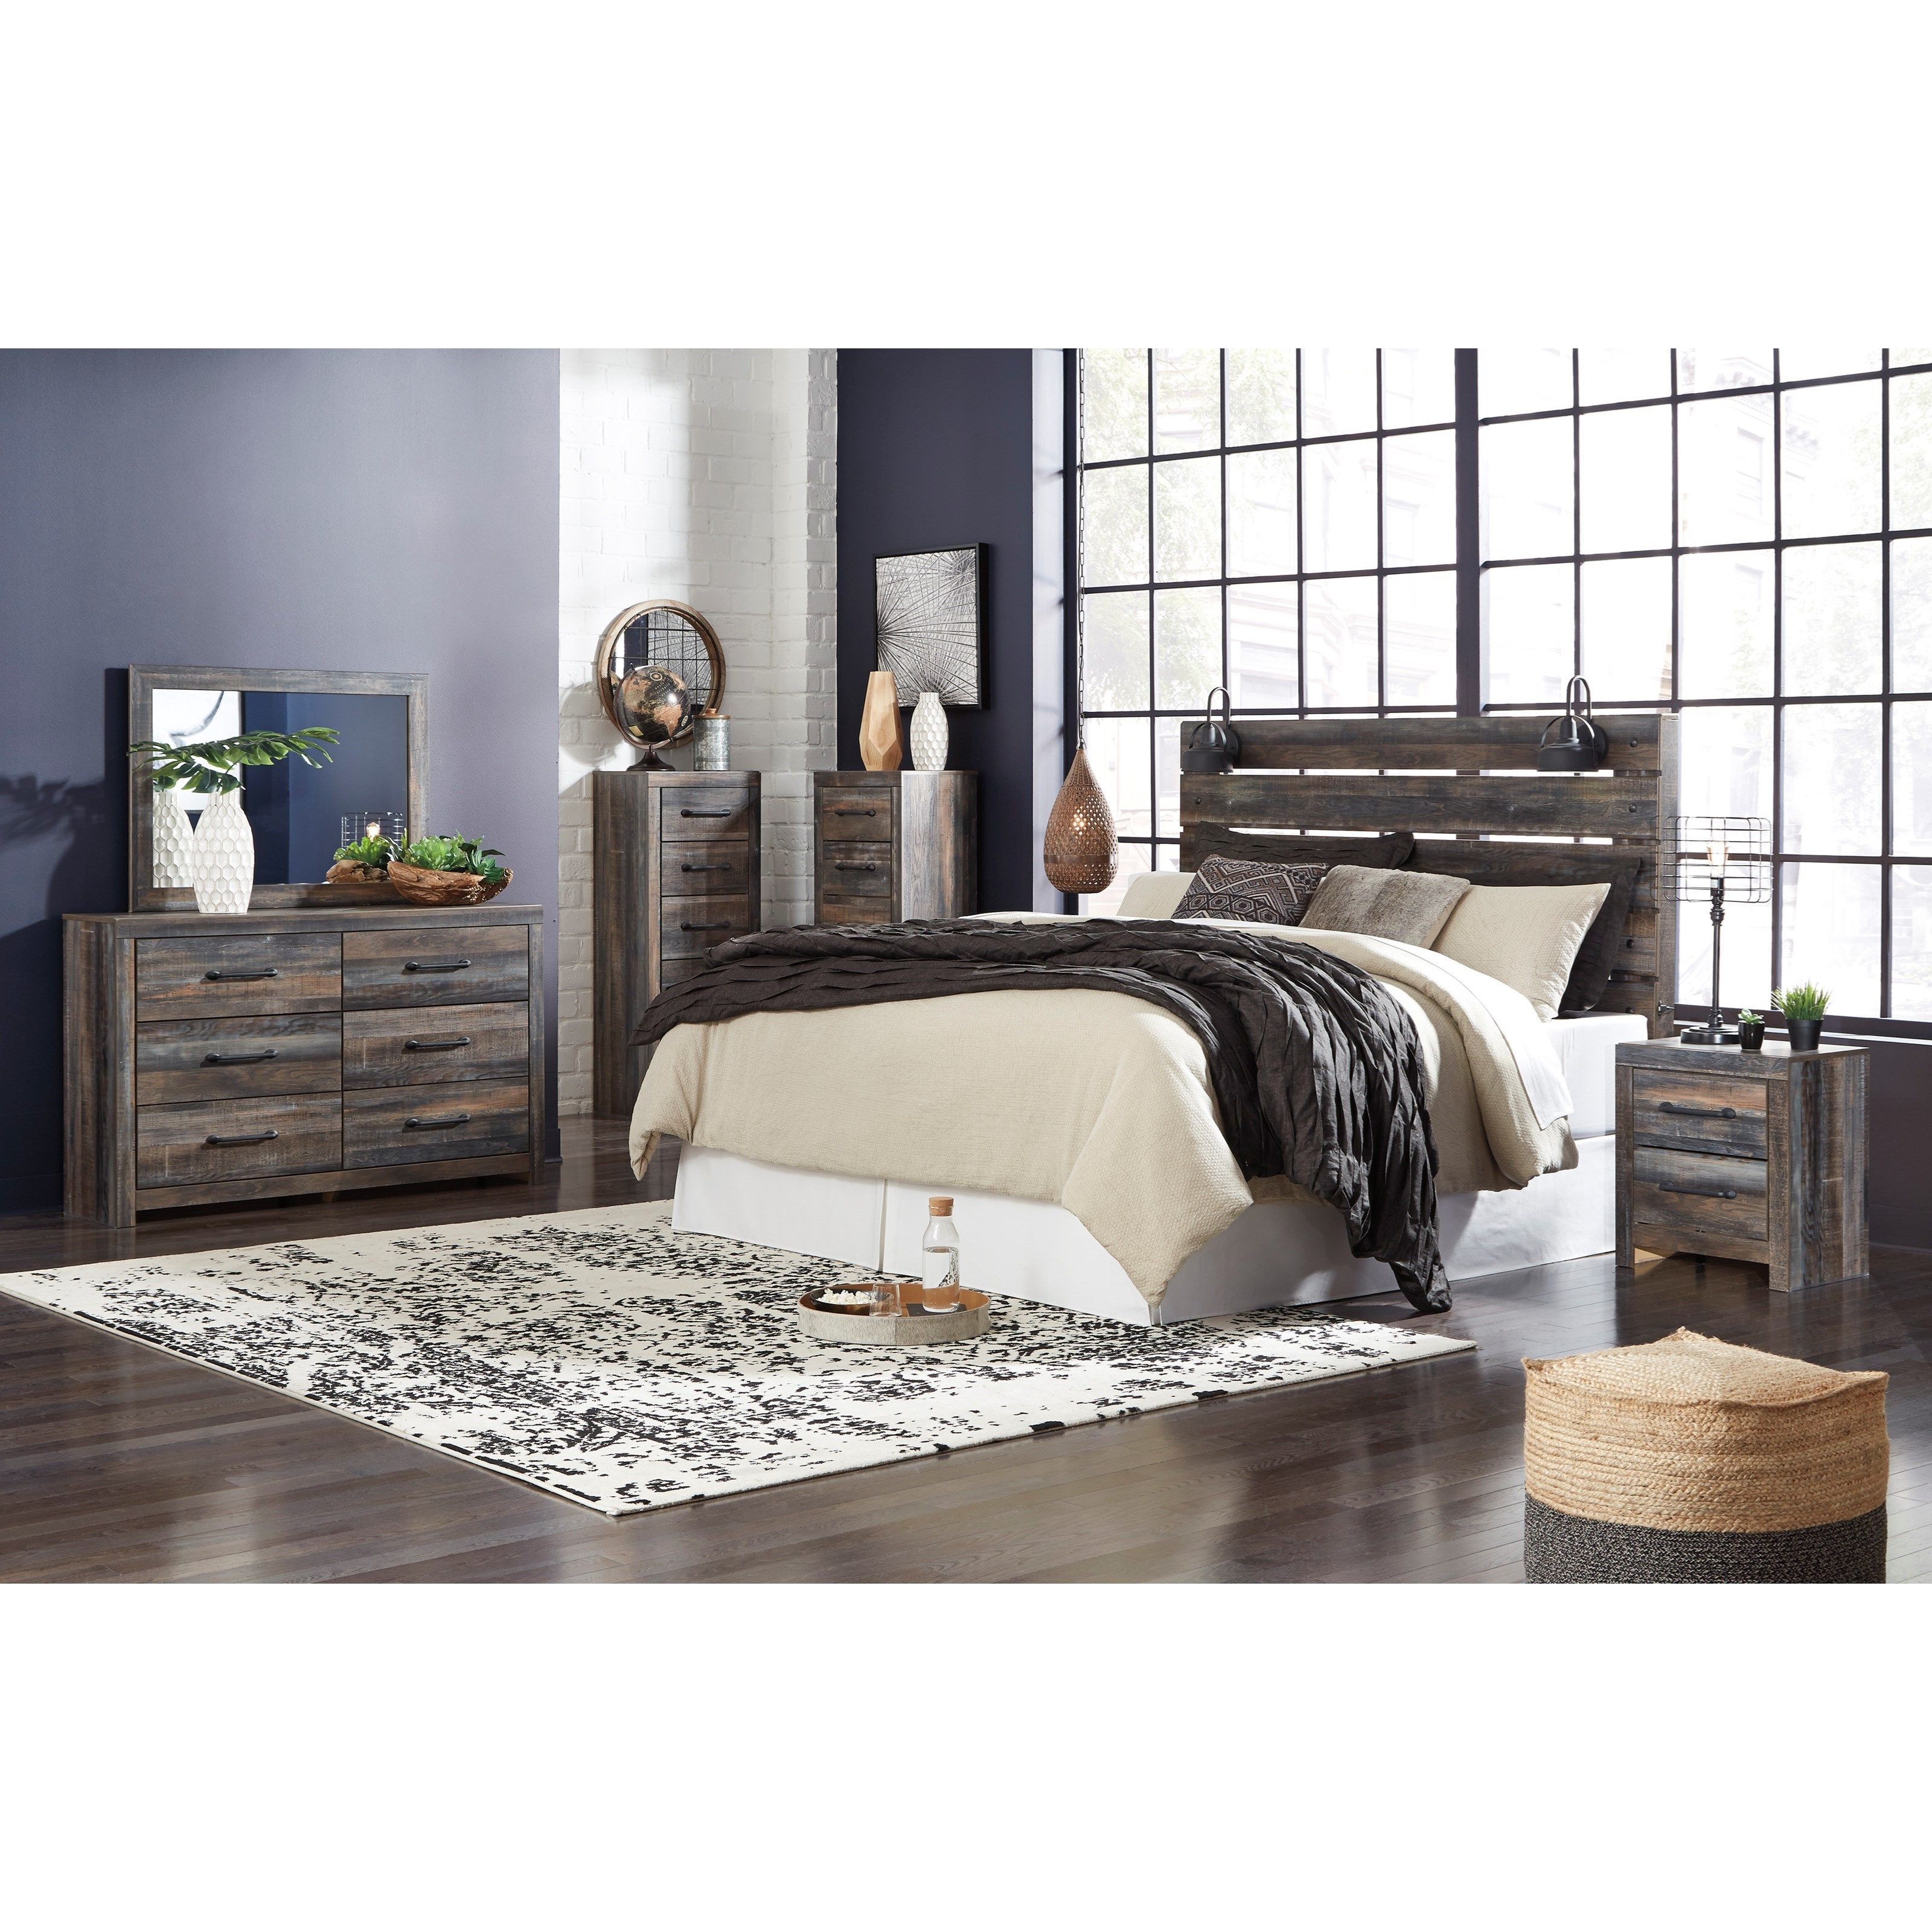 Houston Clearance Furniture: Signature Design By Ashley Drystan Rustic Narrow 5-Drawer